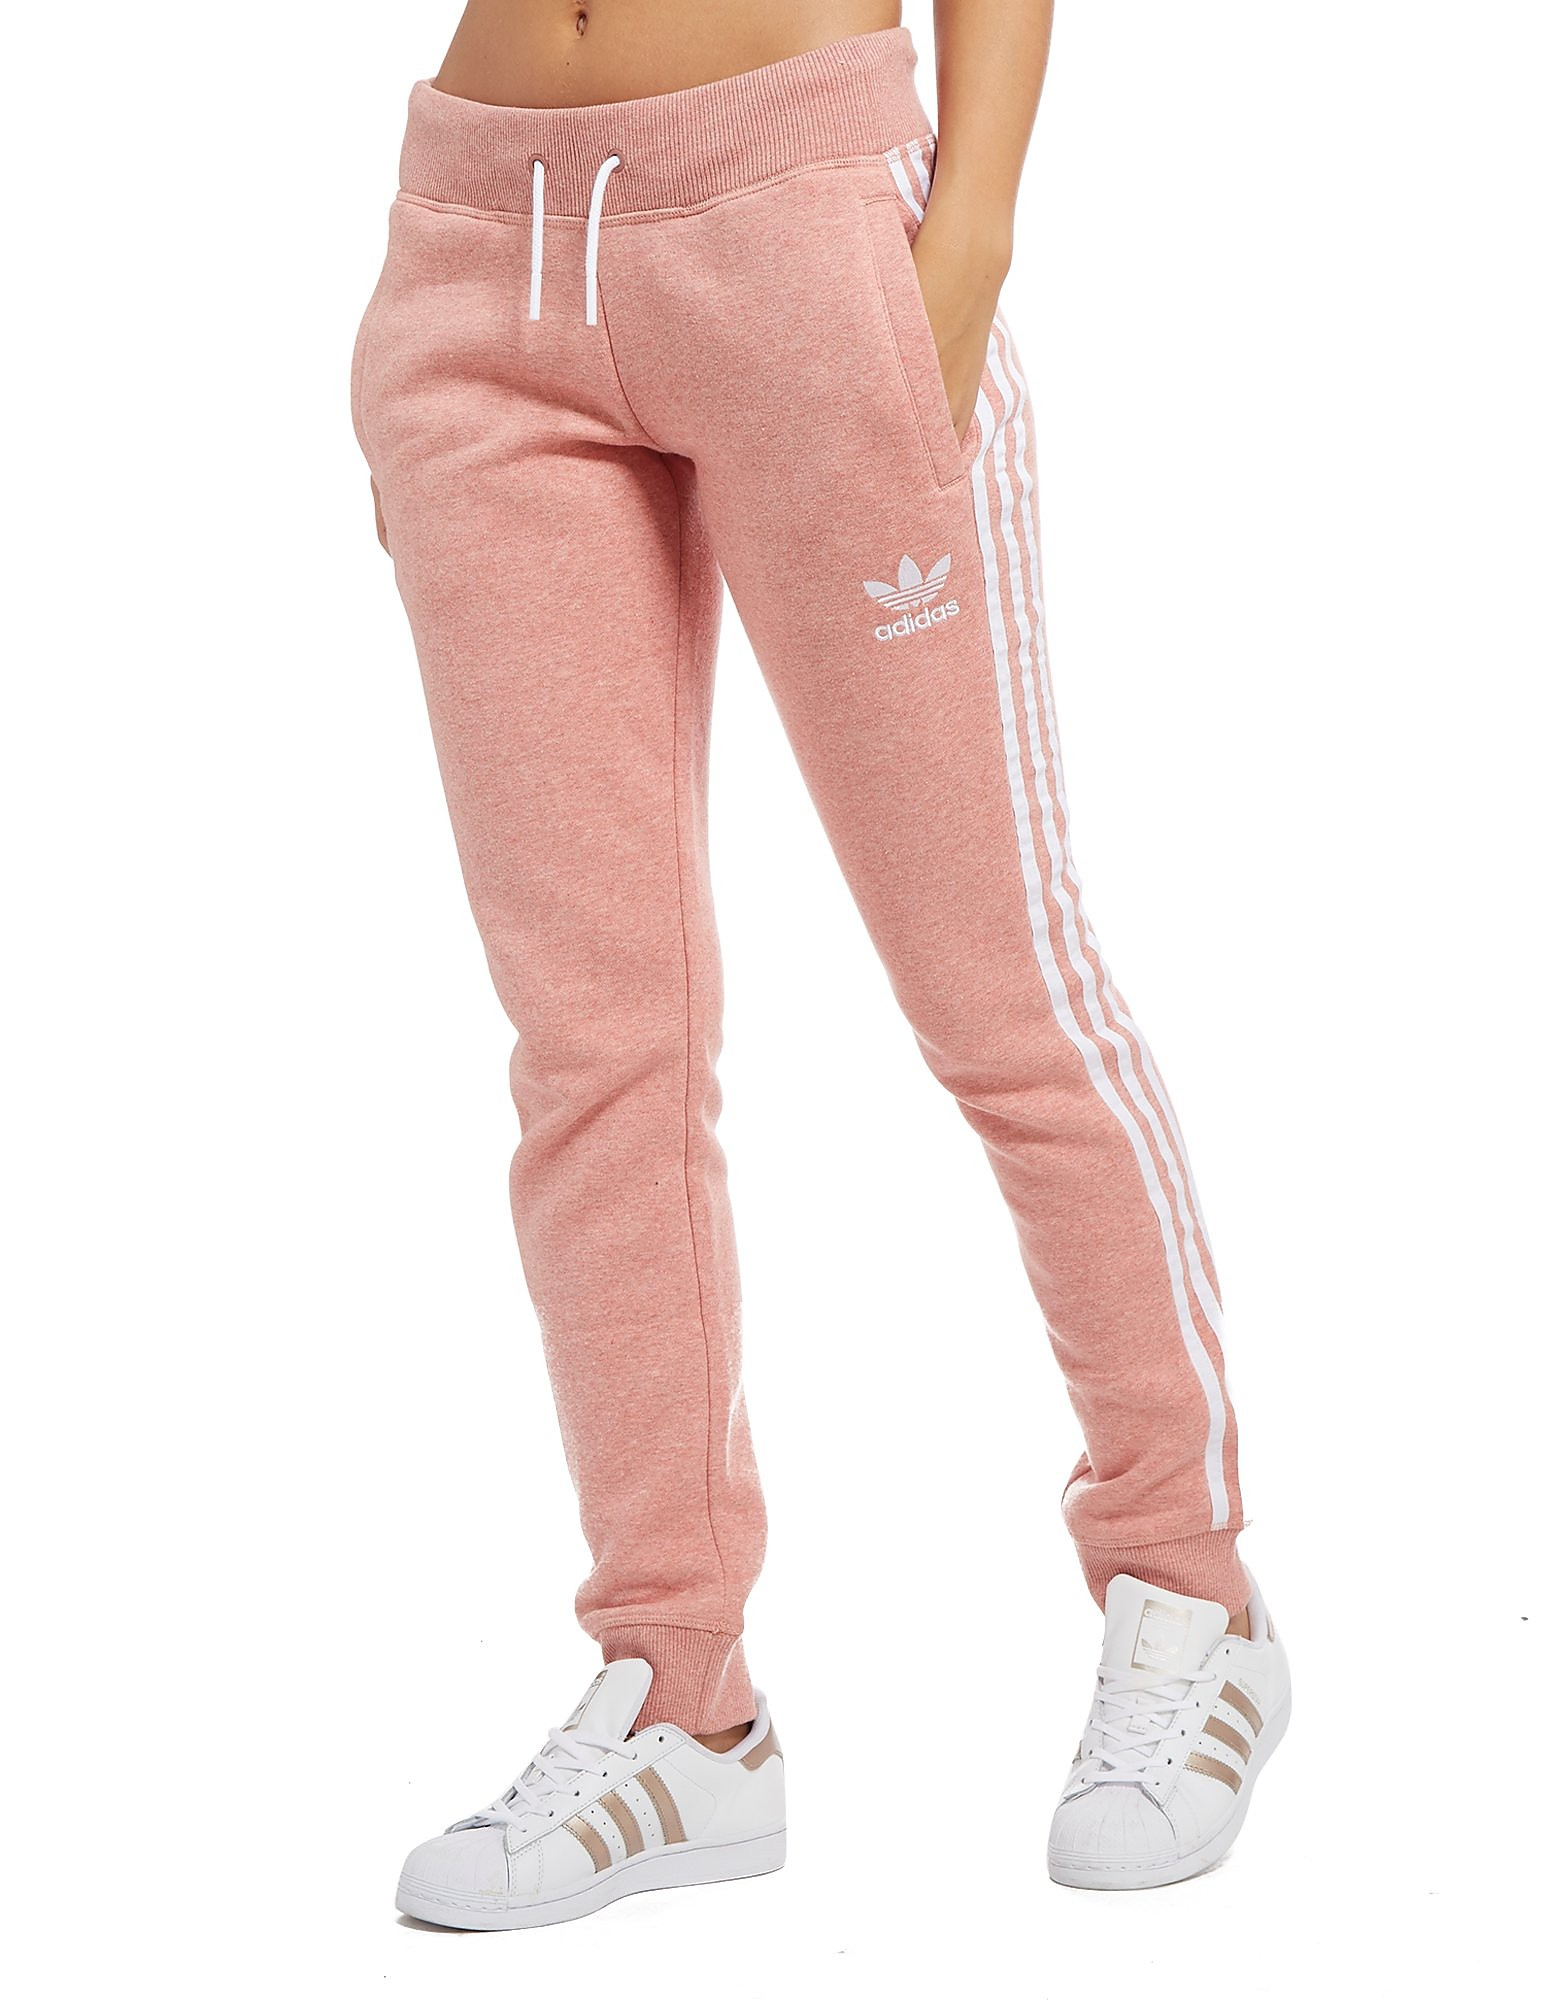 adidas Originals Pantalon California Femme